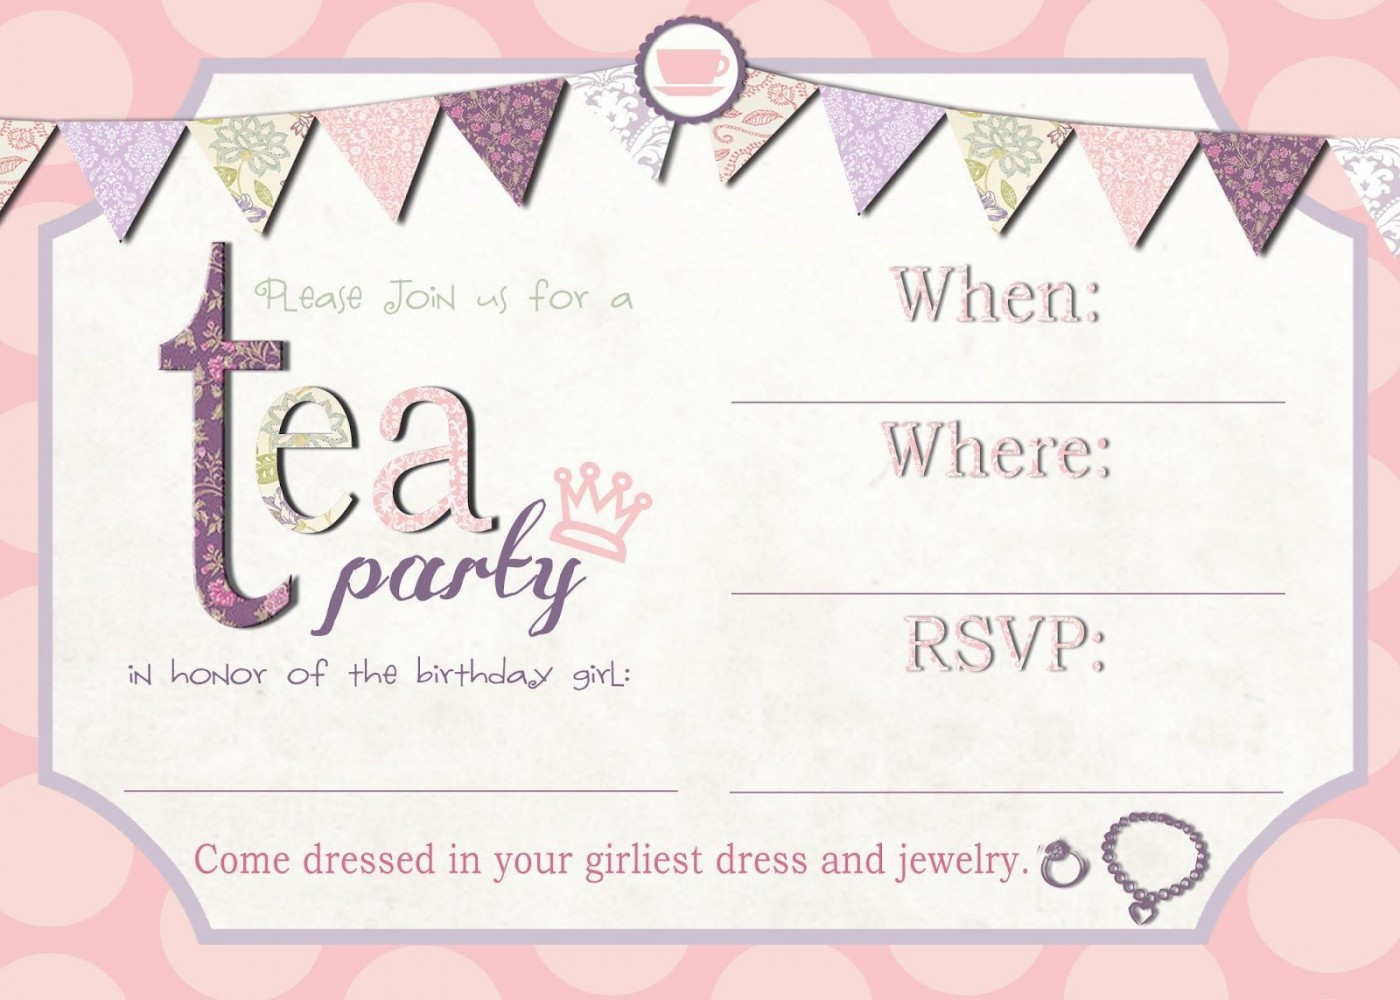 001 Awful Tea Party Invitation Template High Definition  Vintage Free Editable Card Pdf1400